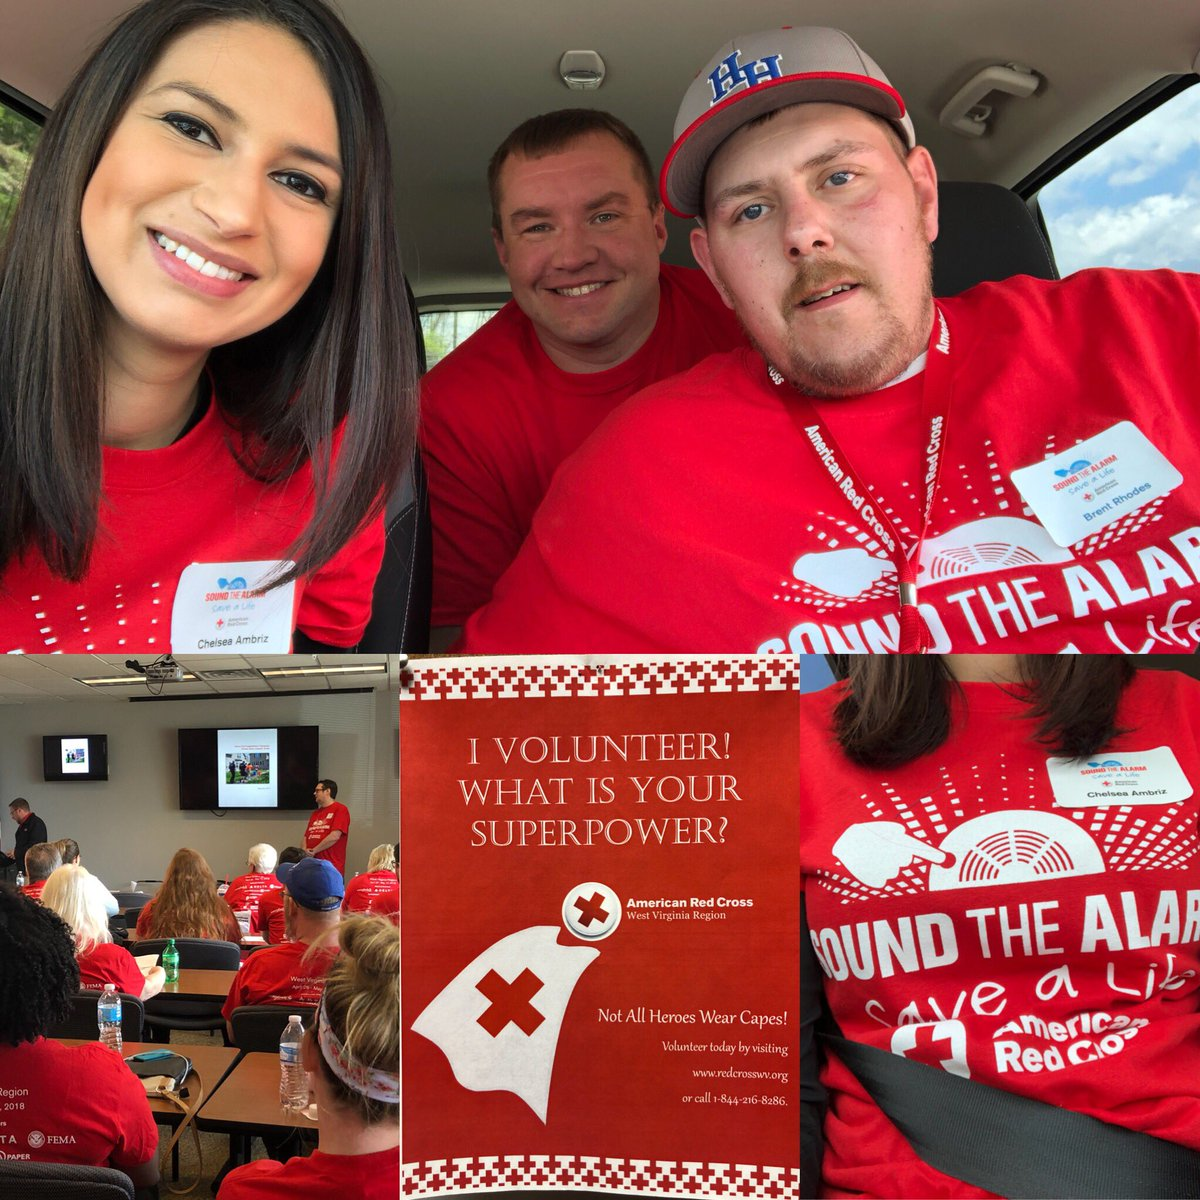 Chelsea Ambriz On Twitter Not All Super Heroes Wear Capes I M One Of Thousands Of People Out Installing Smoke Alarms In Homes This Month Soundthealarm Savealife Redcross Nationalsuperheroday Https T Co Nvtxh3zdik